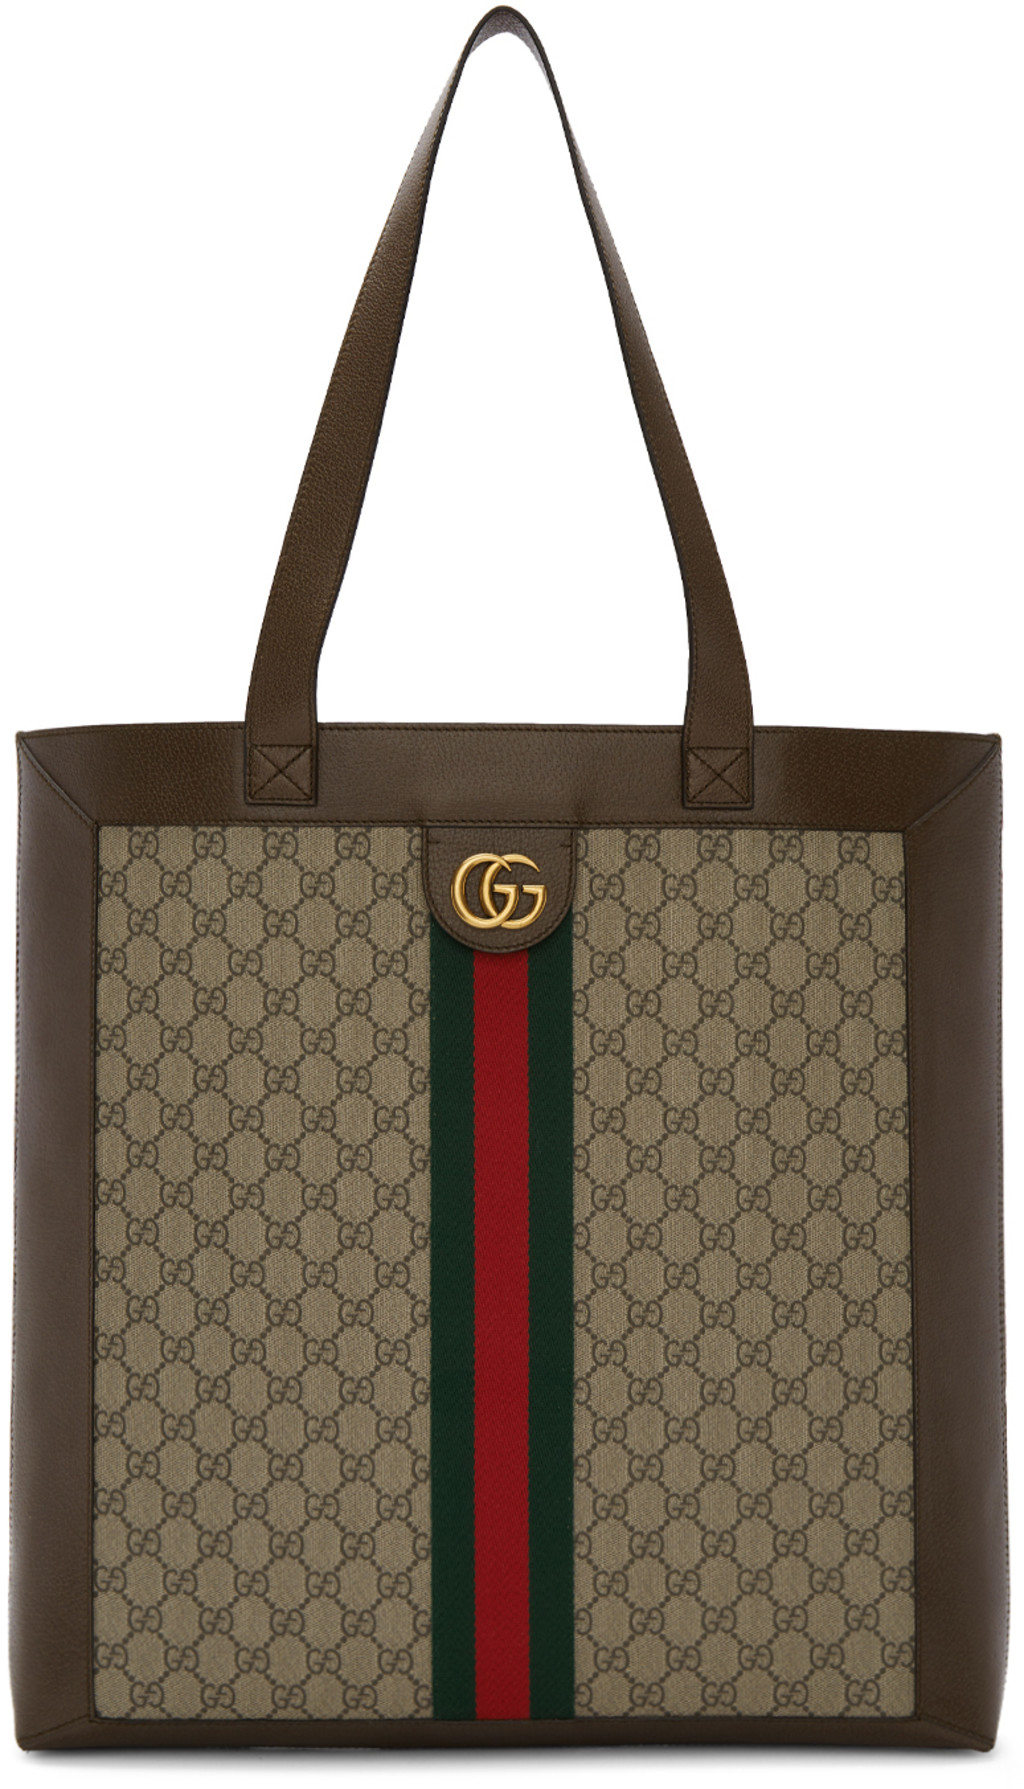 00f004028c Gucci bags for Women